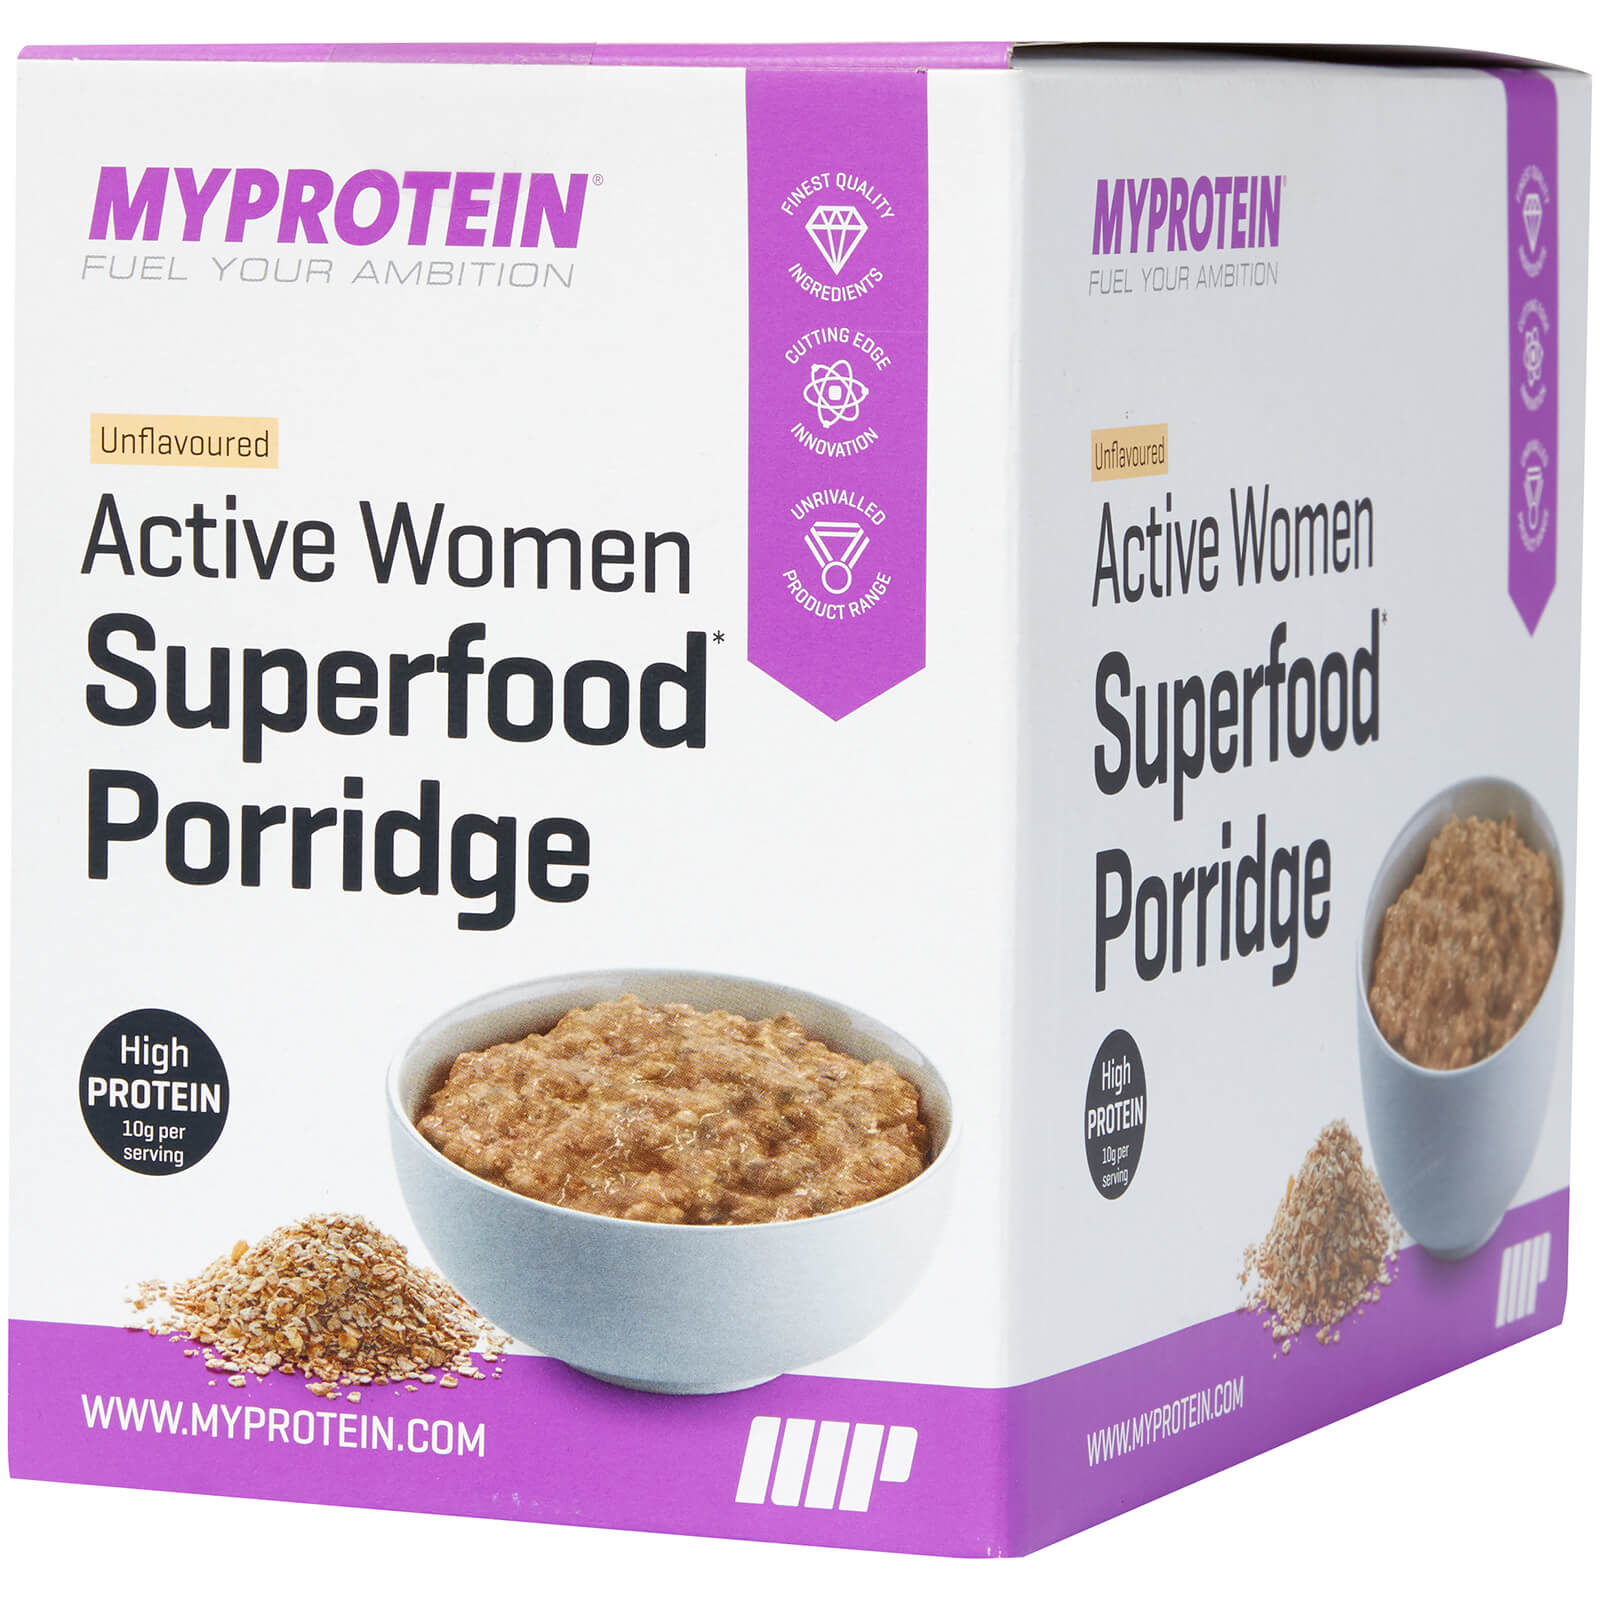 Active Women Superfood Porridge - Unflavoured, 20 x 40g